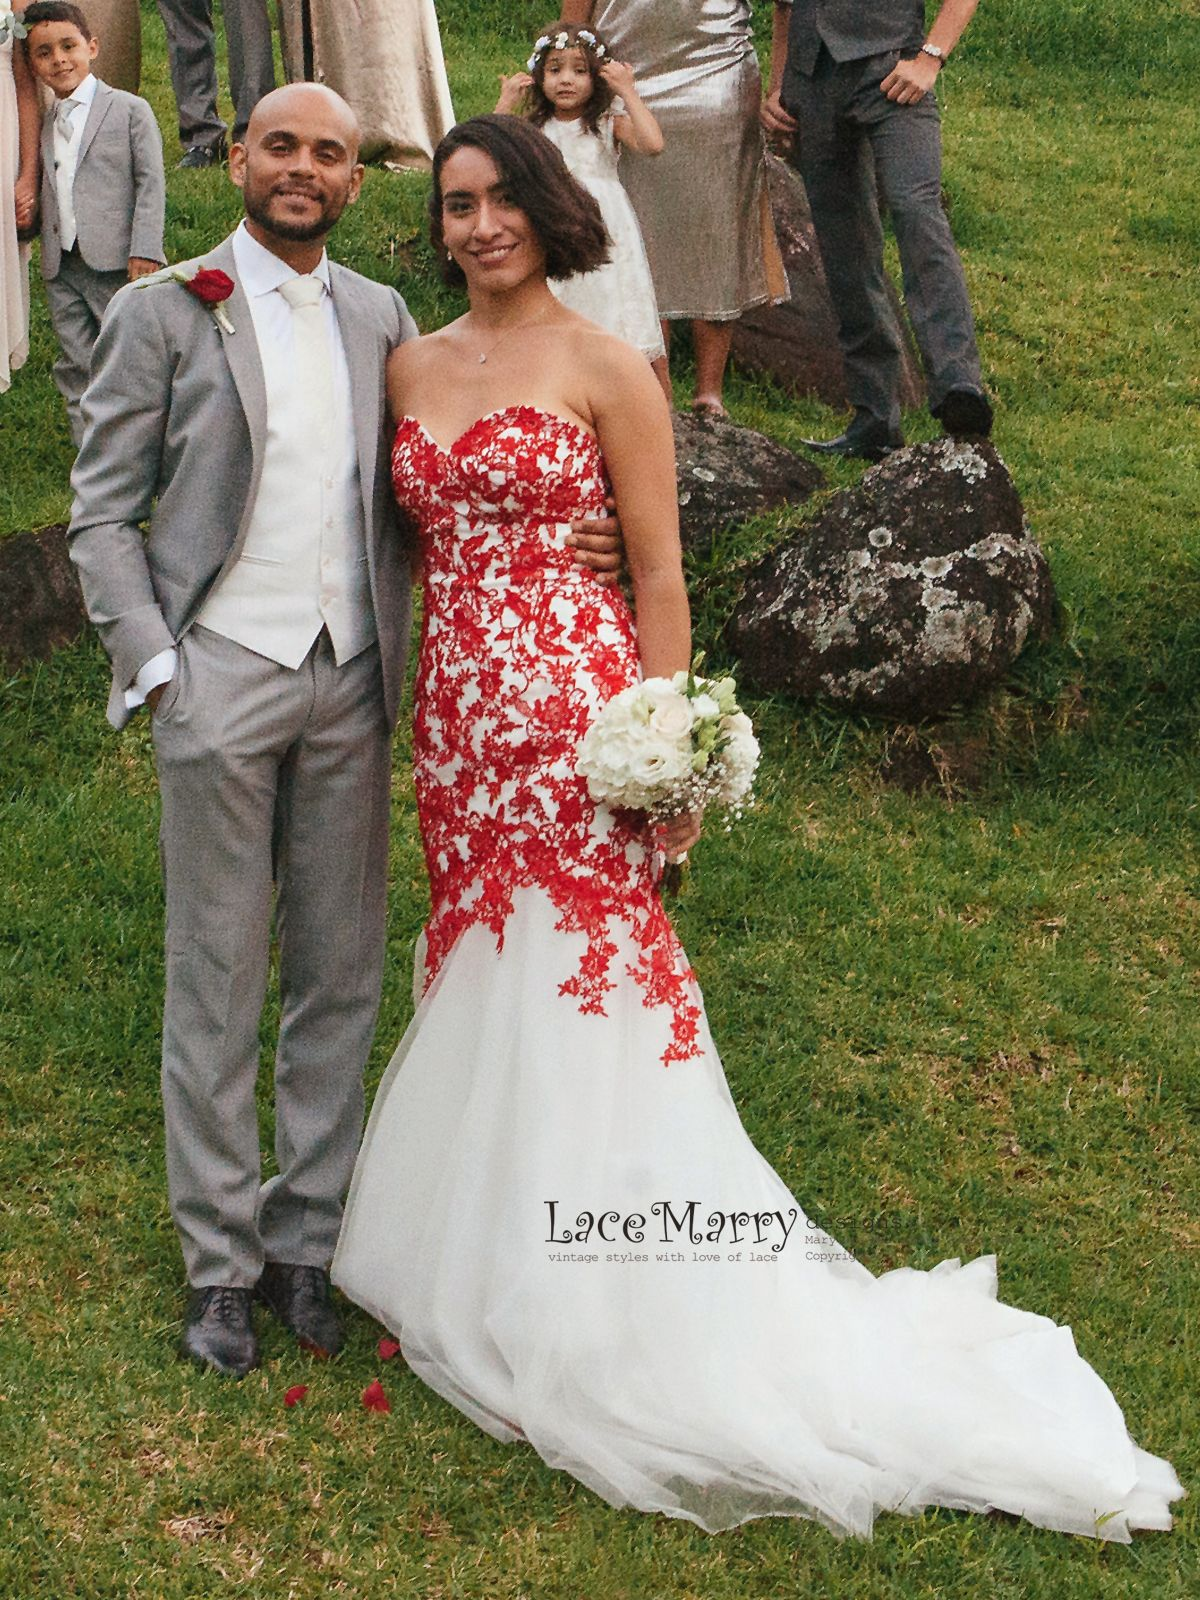 Red Lace Wedding Dress With Ivory Tulle Strapless Sweetheart Etsy Red Lace Wedding Dress White Bridal Gown Wedding Dresses [ 1600 x 1200 Pixel ]